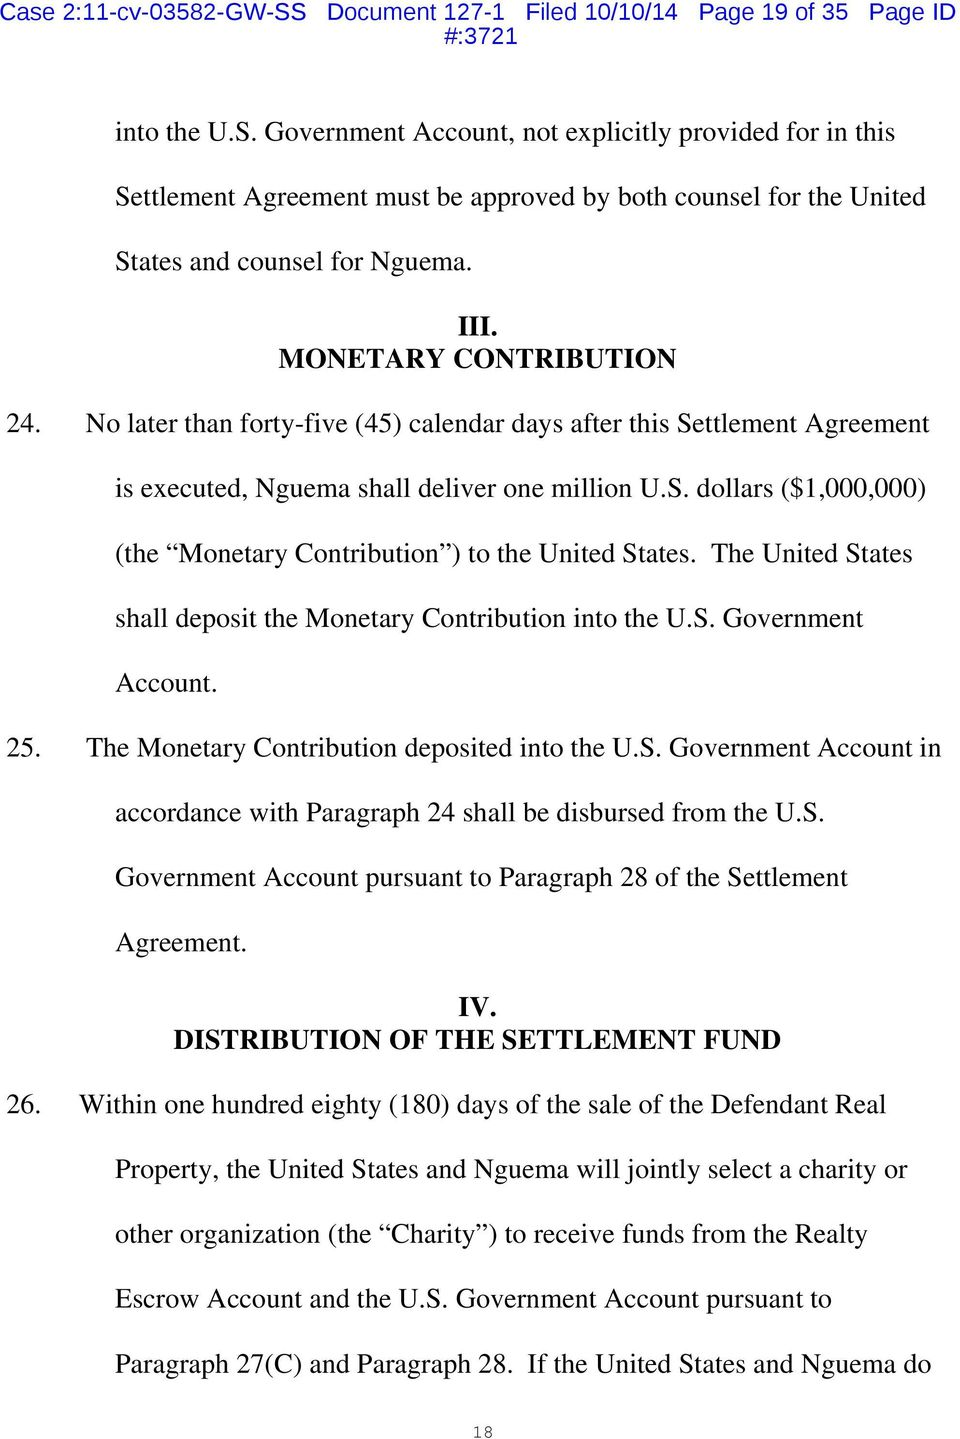 The United States shall deposit the Monetary Contribution into the U.S. Government Account. 25. The Monetary Contribution deposited into the U.S. Government Account in accordance with Paragraph 24 shall be disbursed from the U.